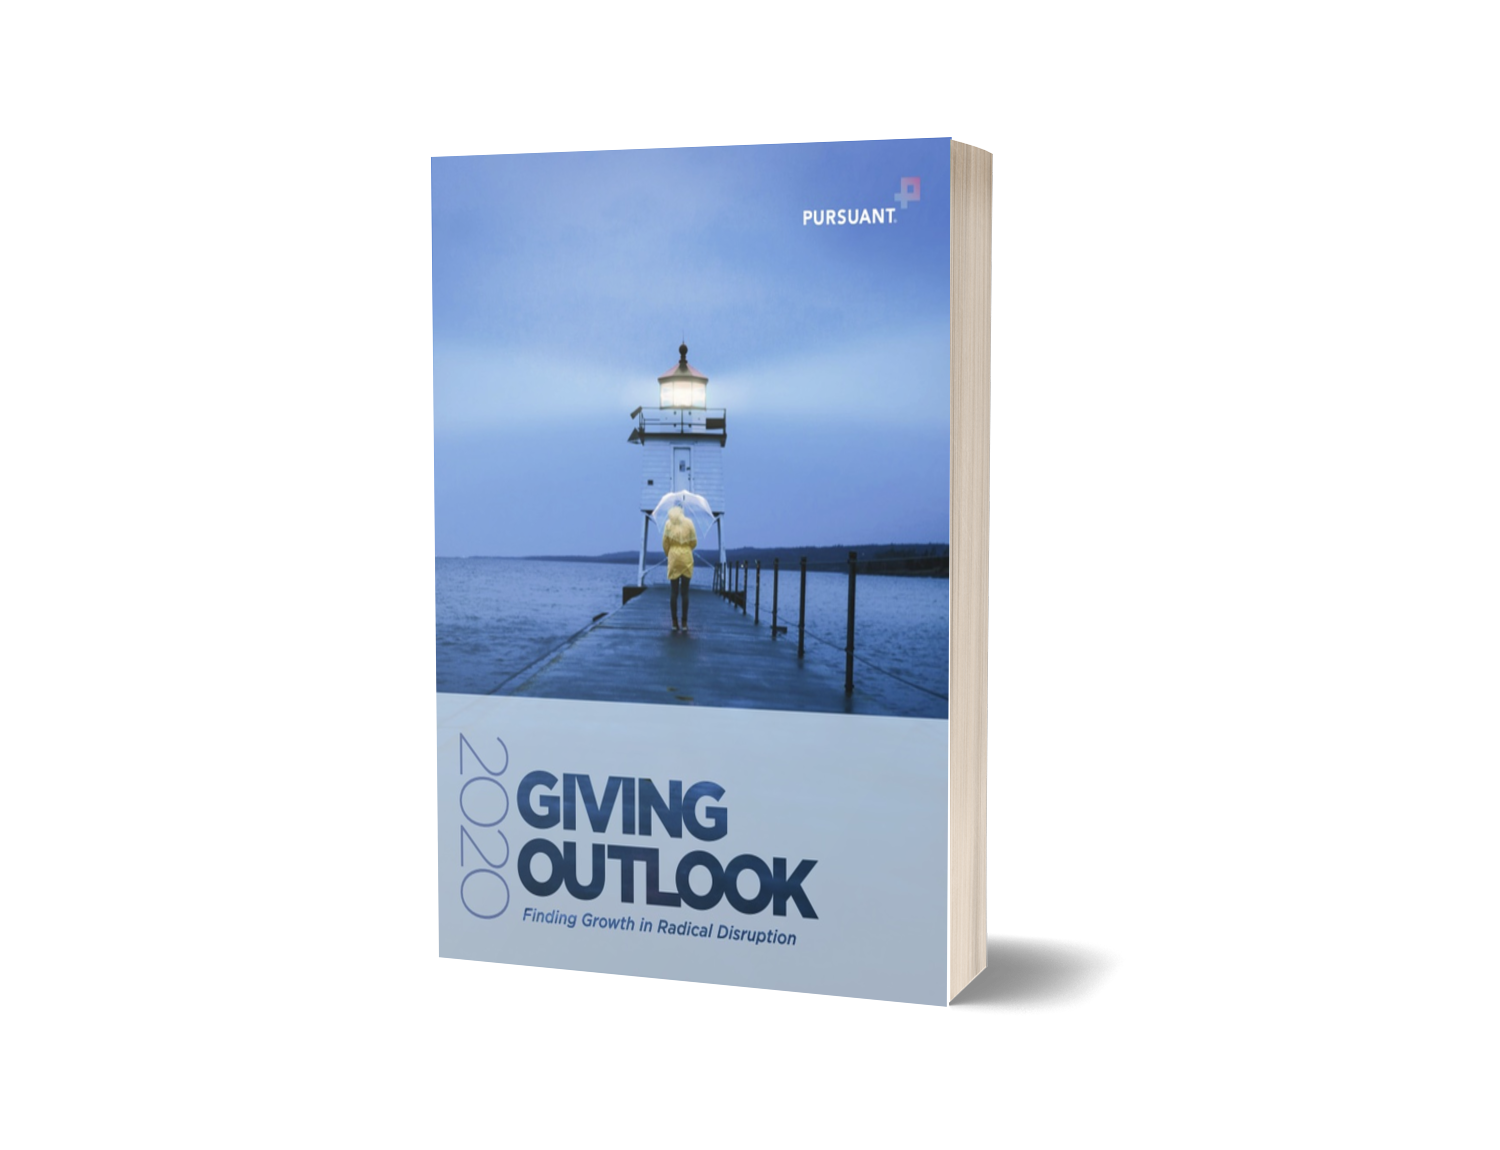 Pursuant Giving Outlook 2020